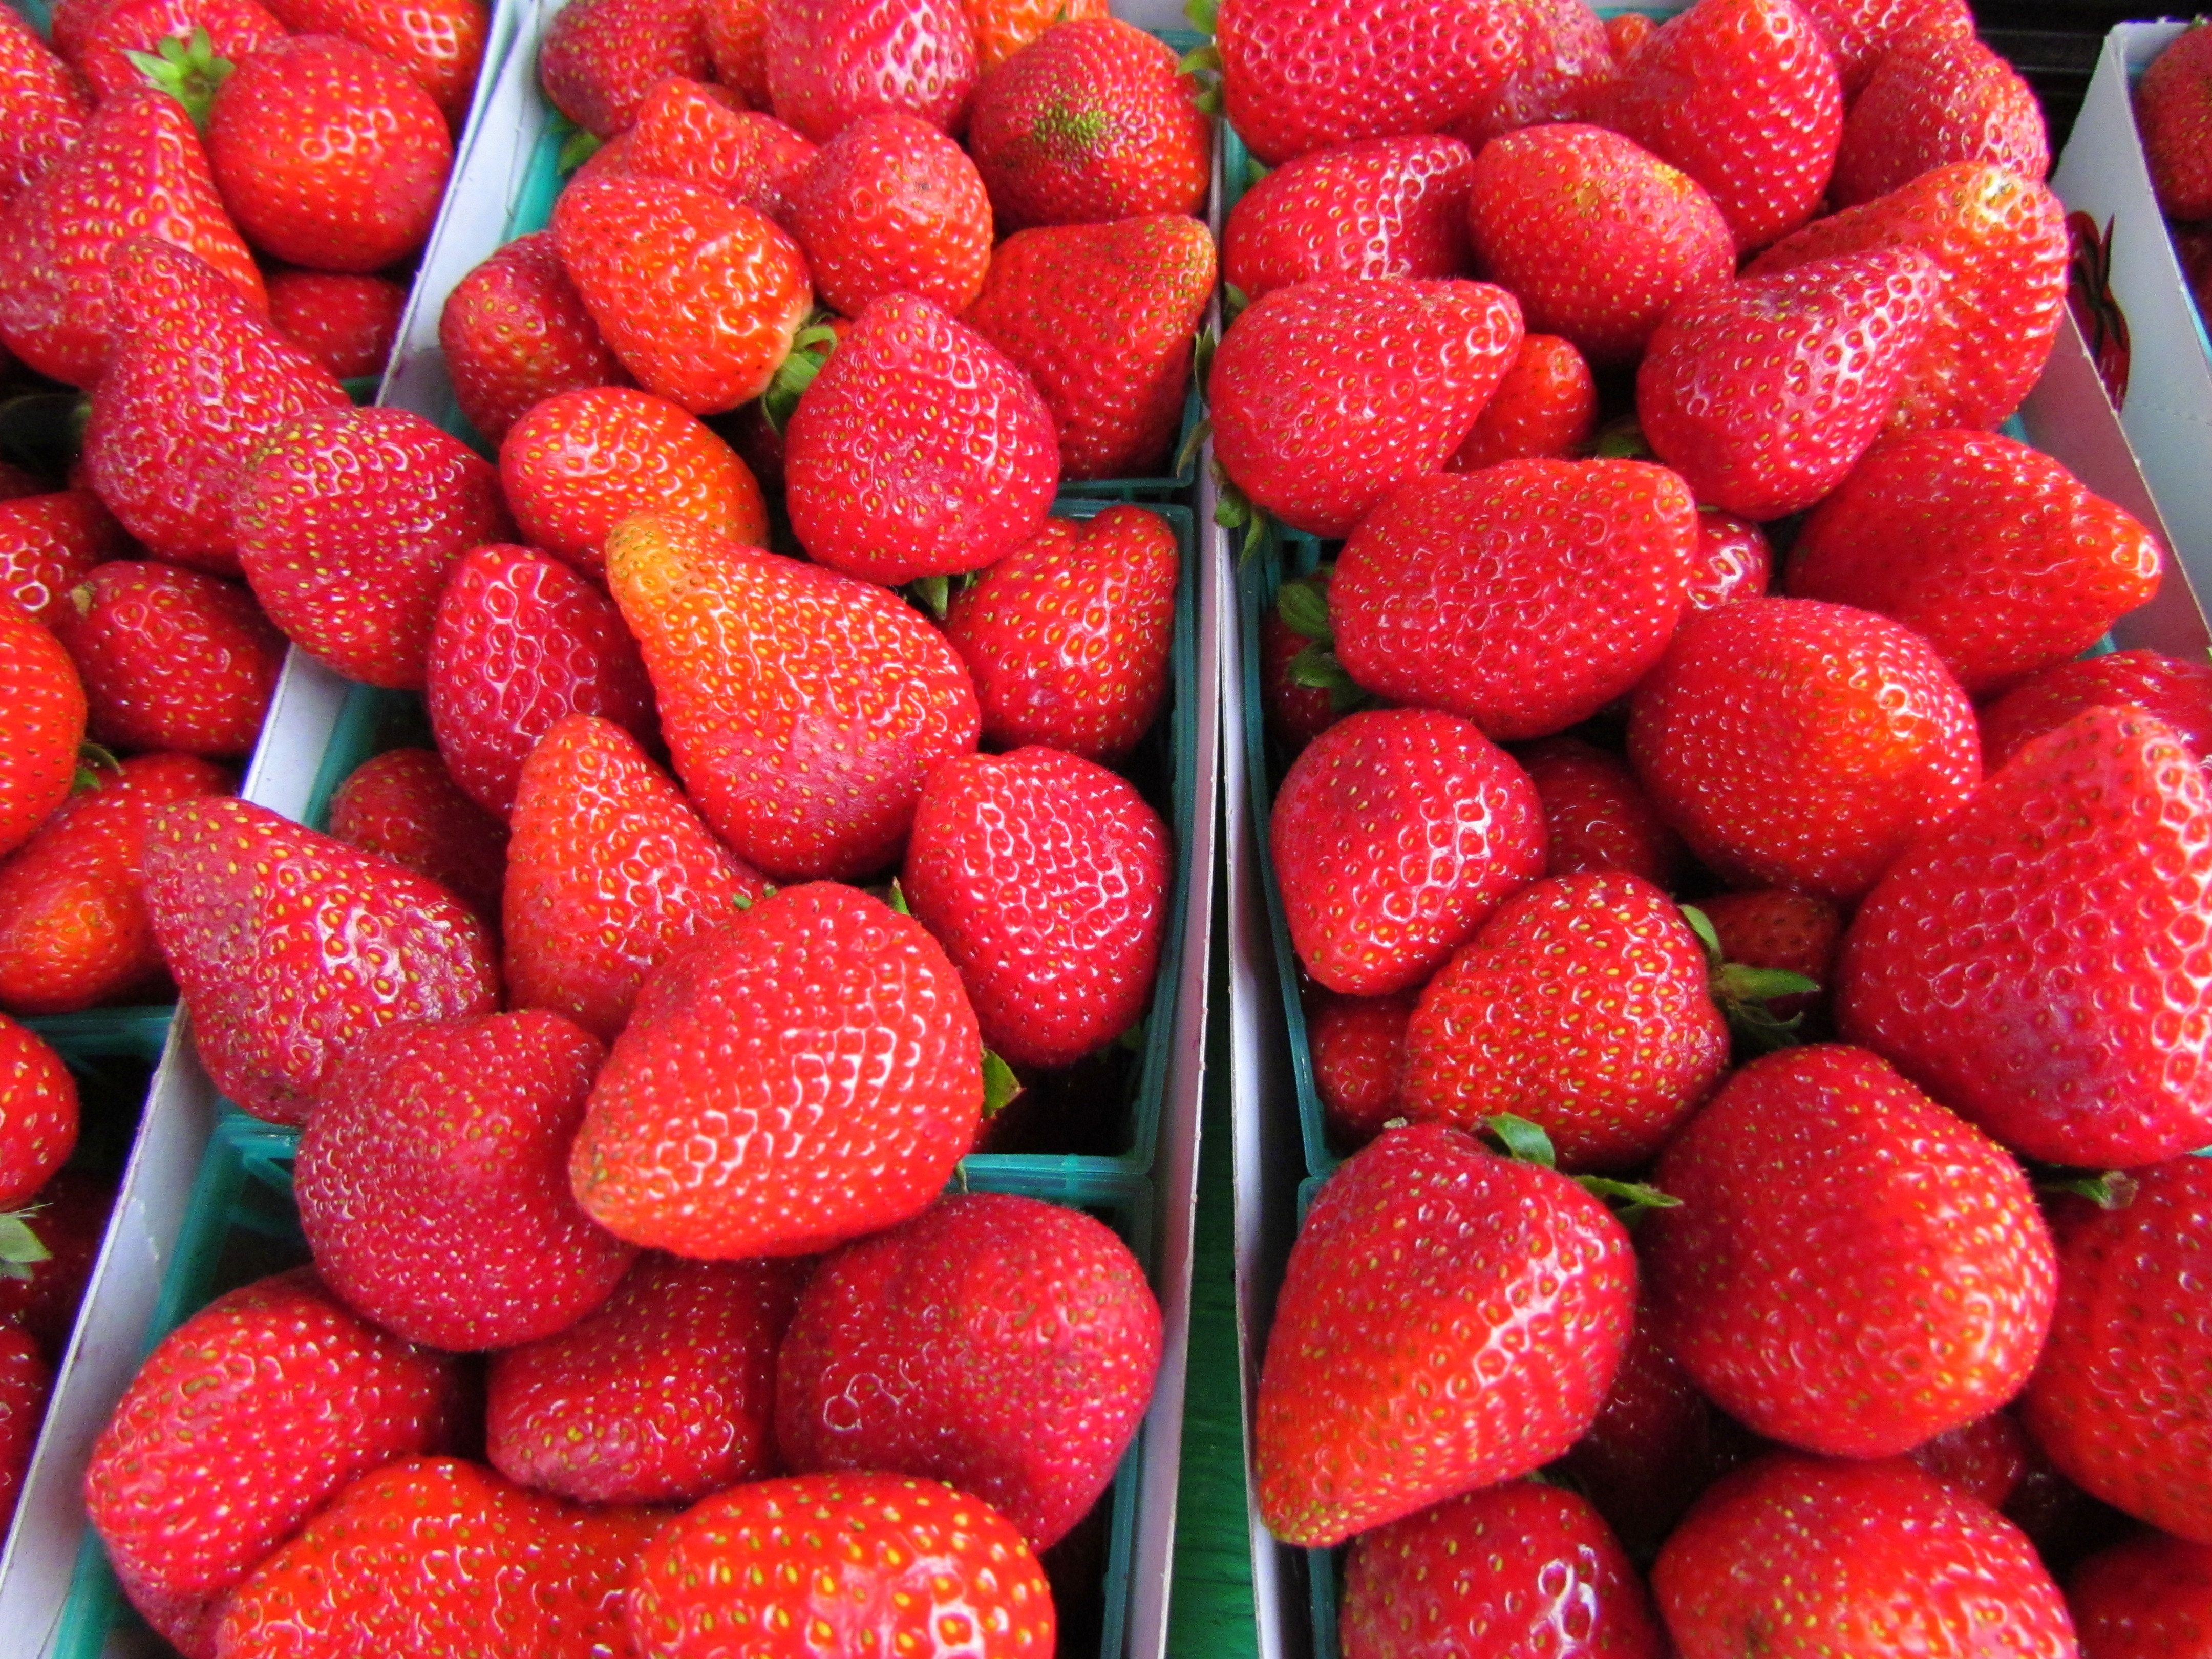 Strawberries grown here in Sonoma